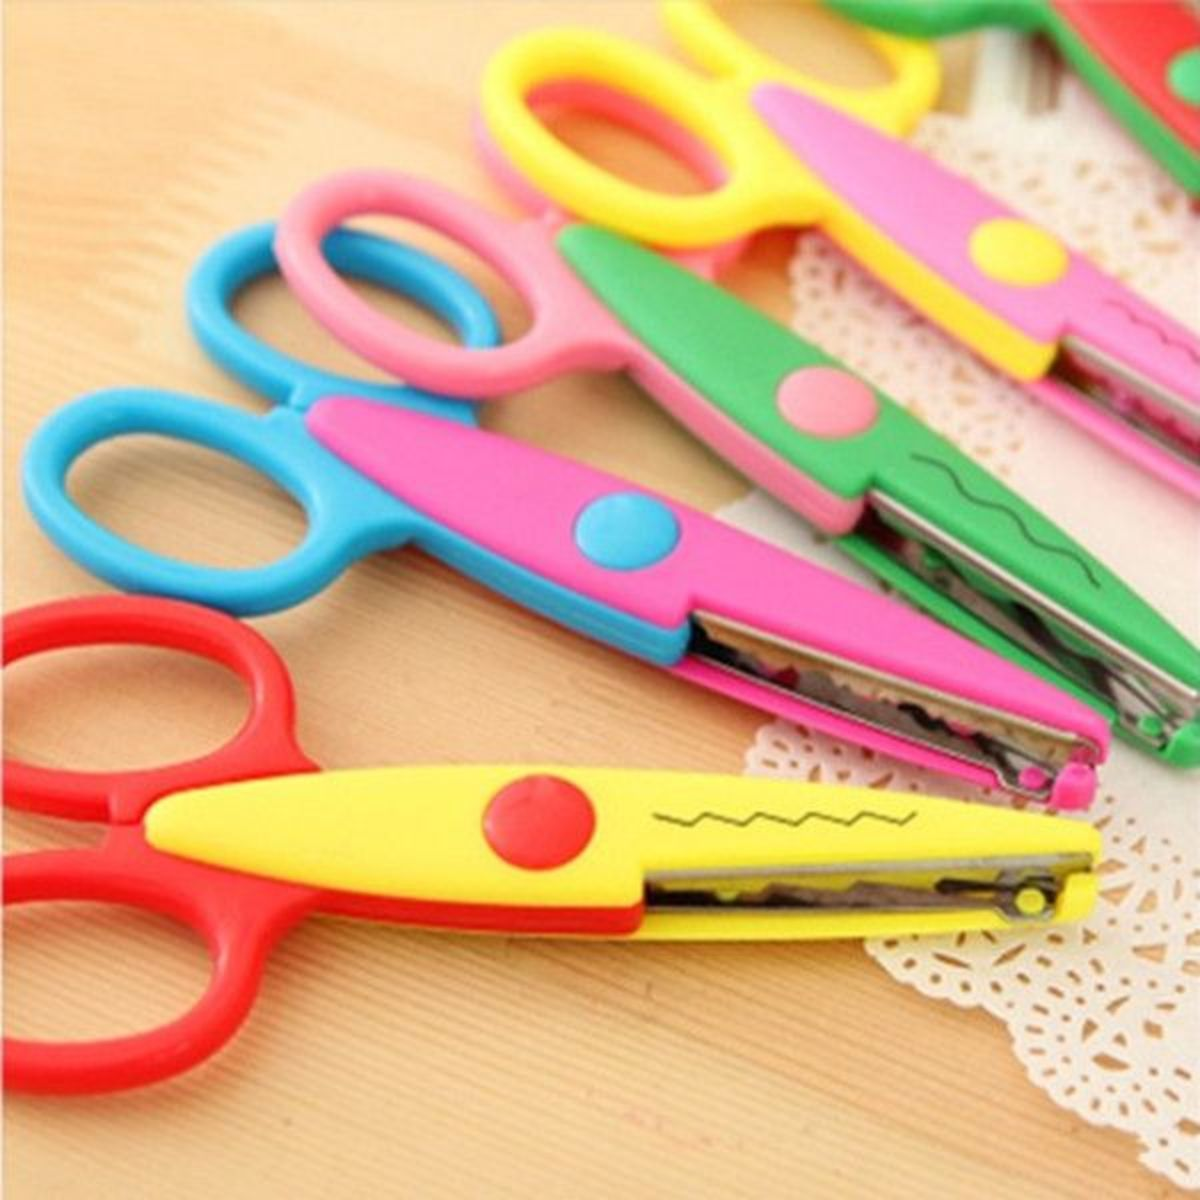 Decorative Scissors Ideas And Tips